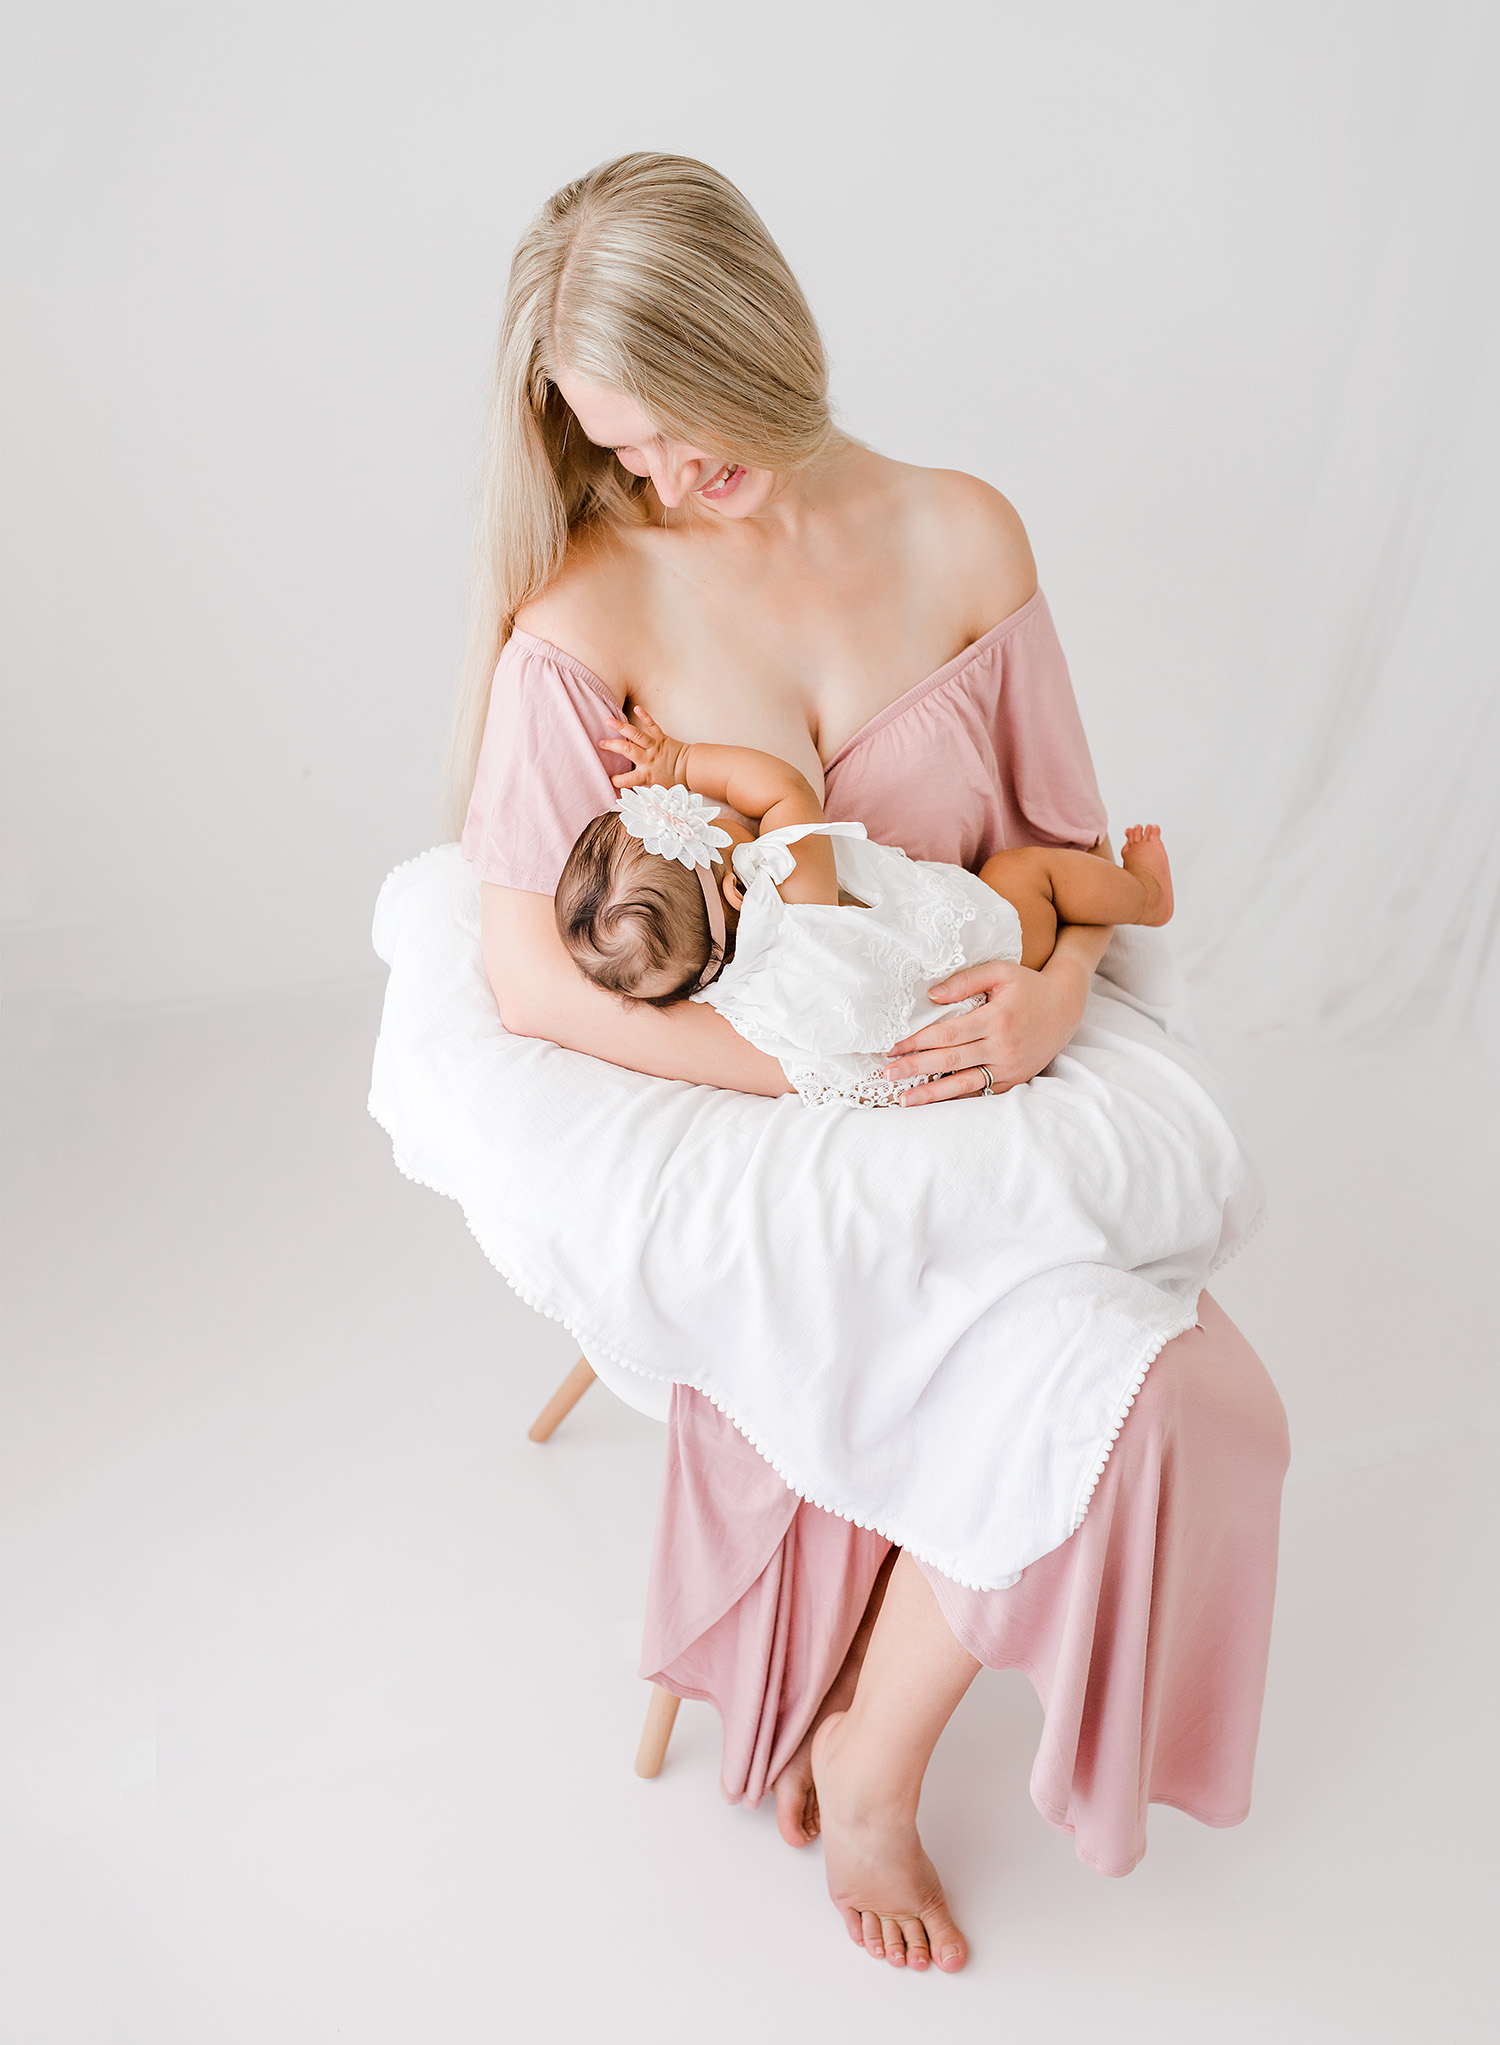 breasfeeding-photography-mommy-and-me-andrea-krey-photography-savannah-ga6.jpg